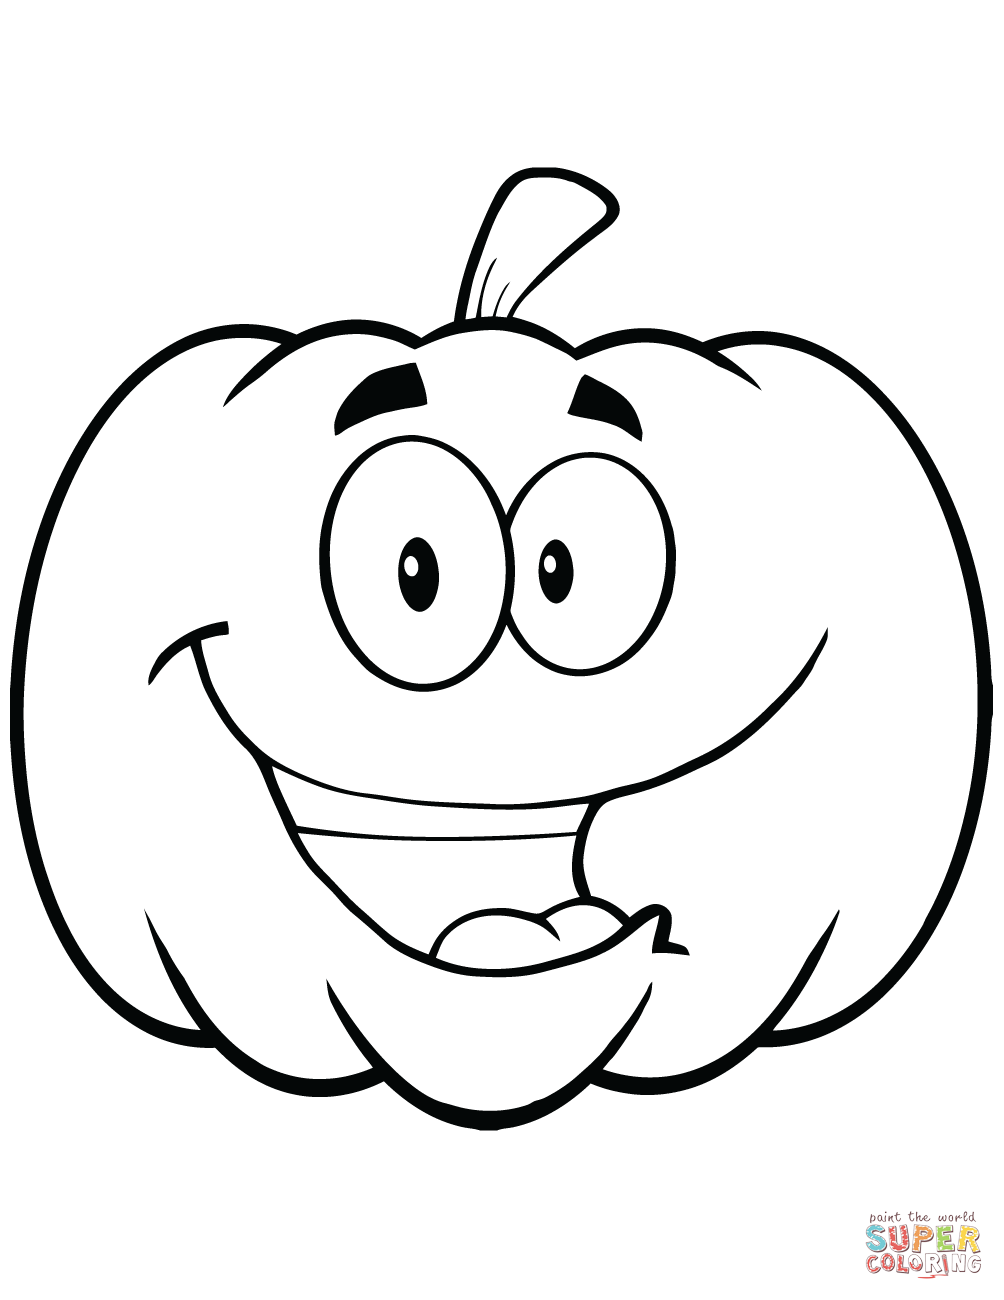 halloween pictures to color pumpkin how to draw a halloween pumpkin halloween pumpkin step halloween pumpkin pictures color to